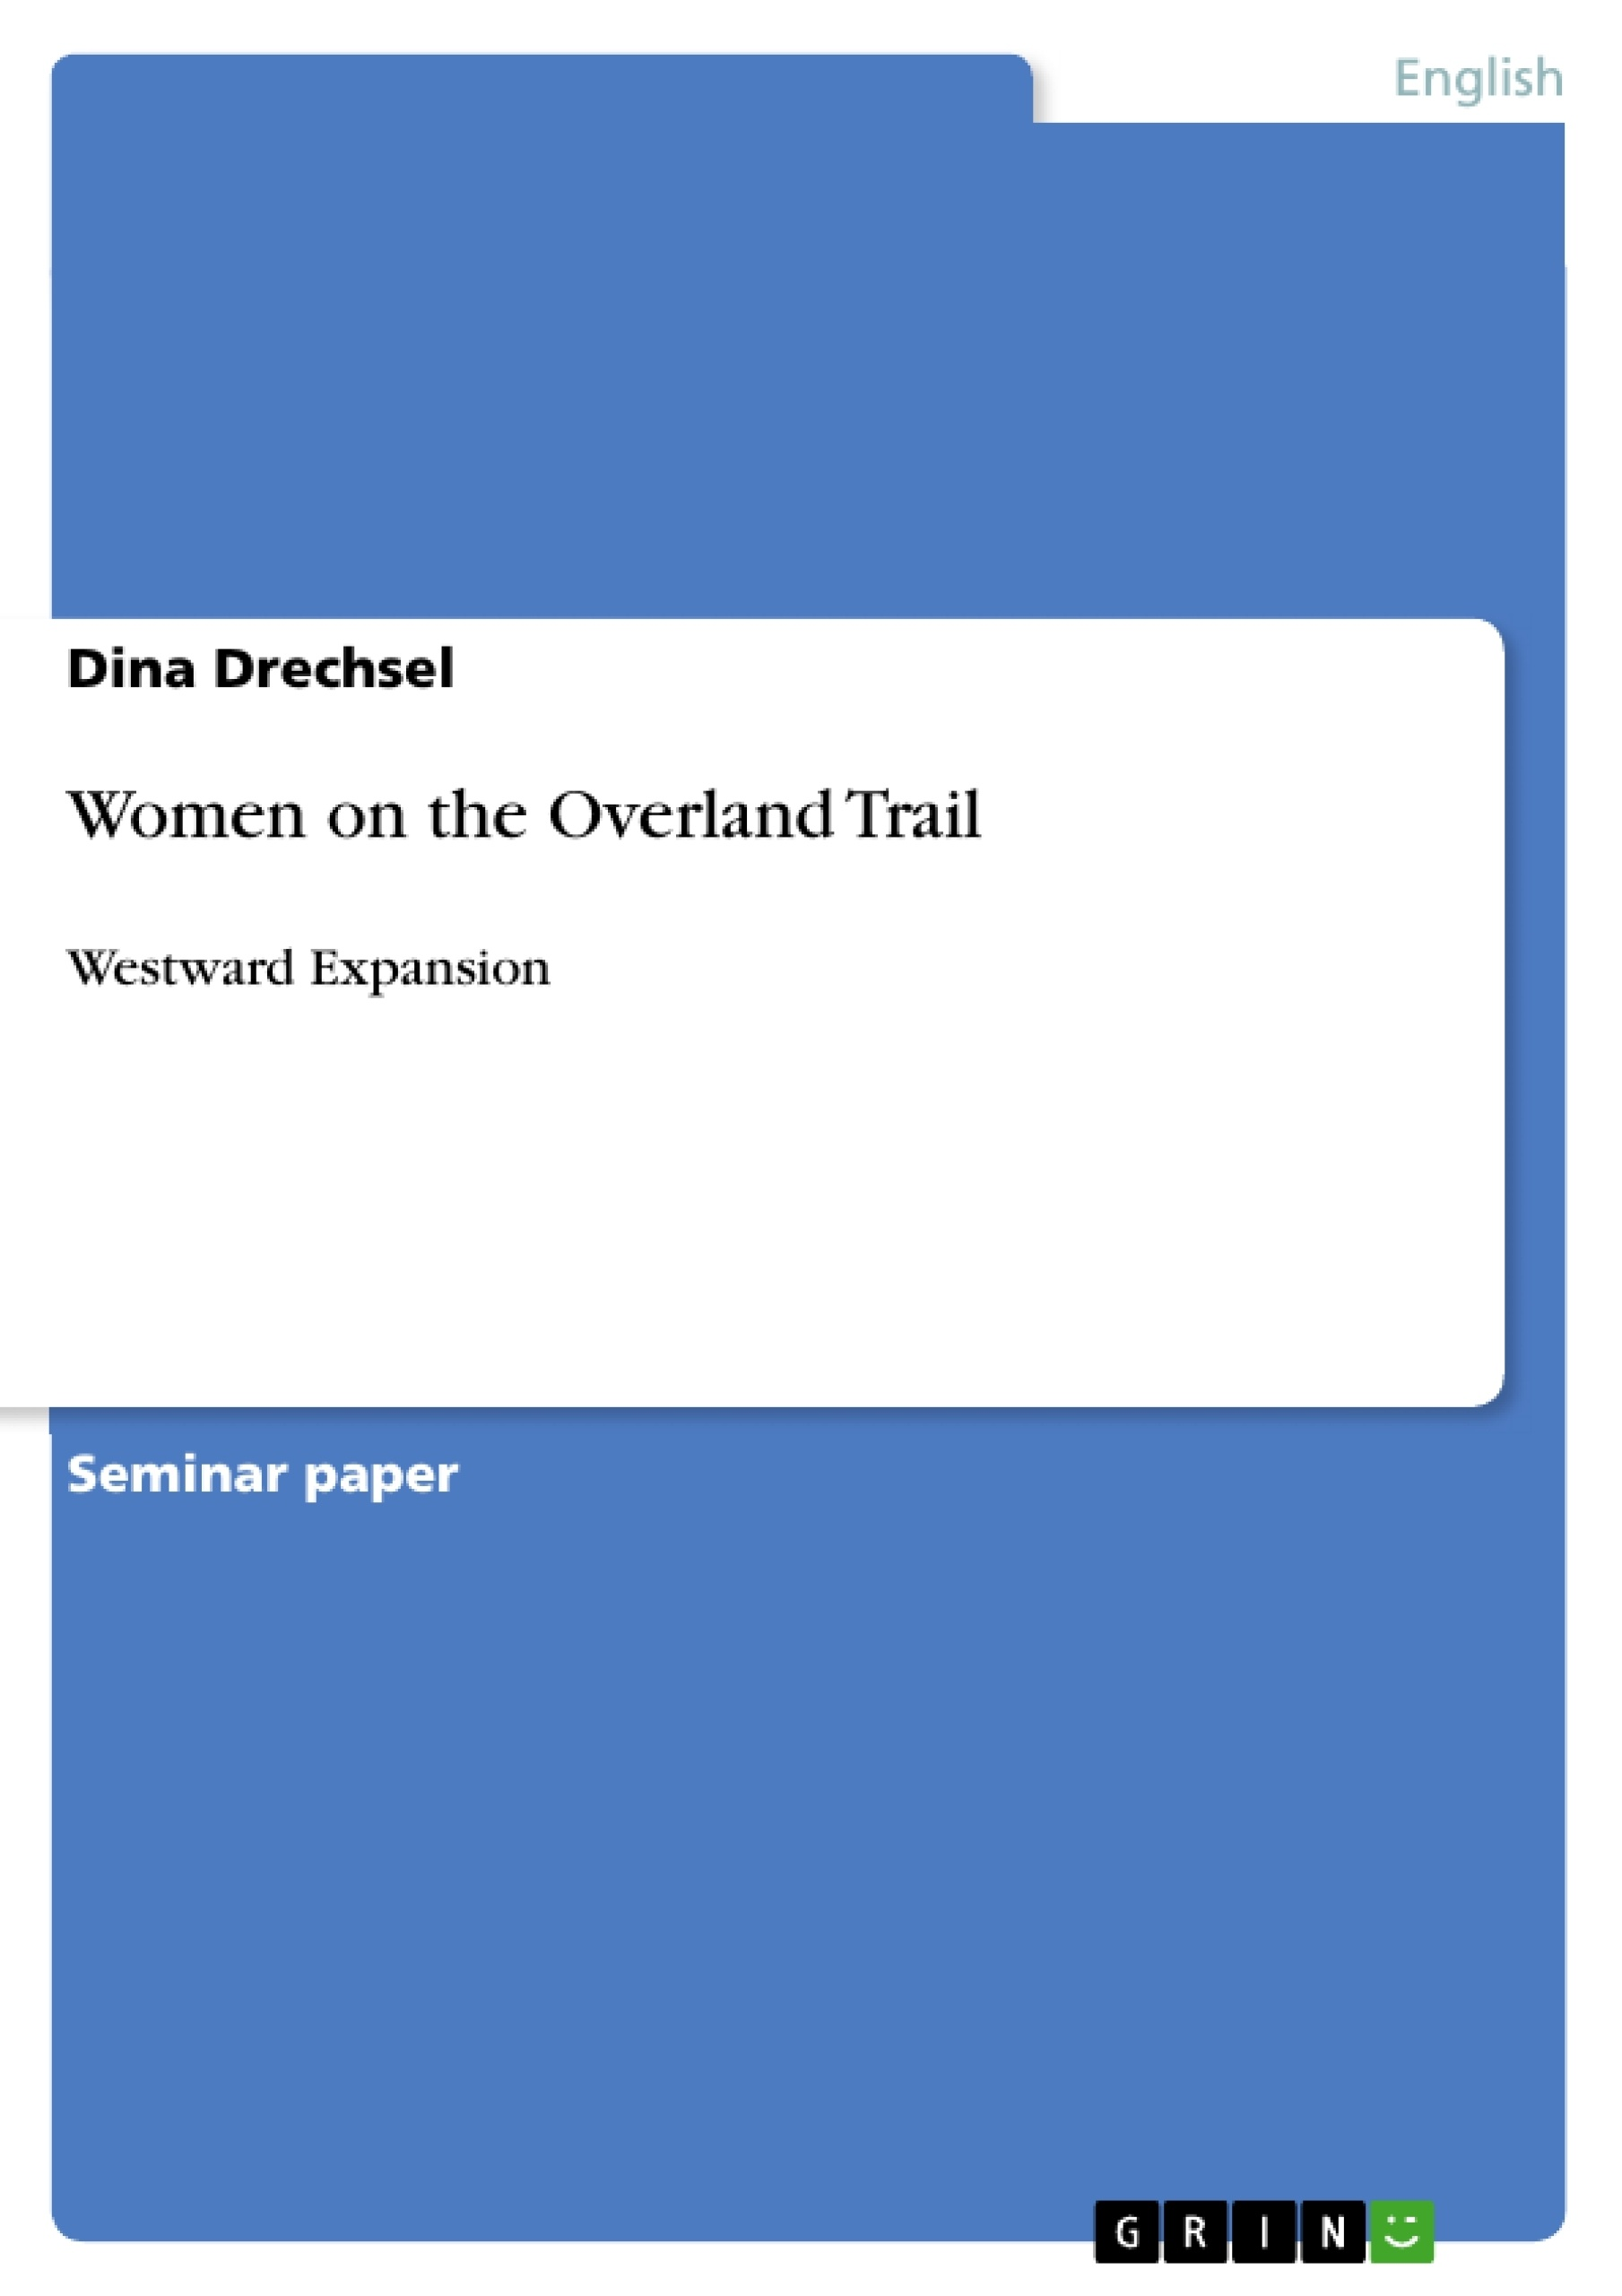 Title: Women on the Overland Trail